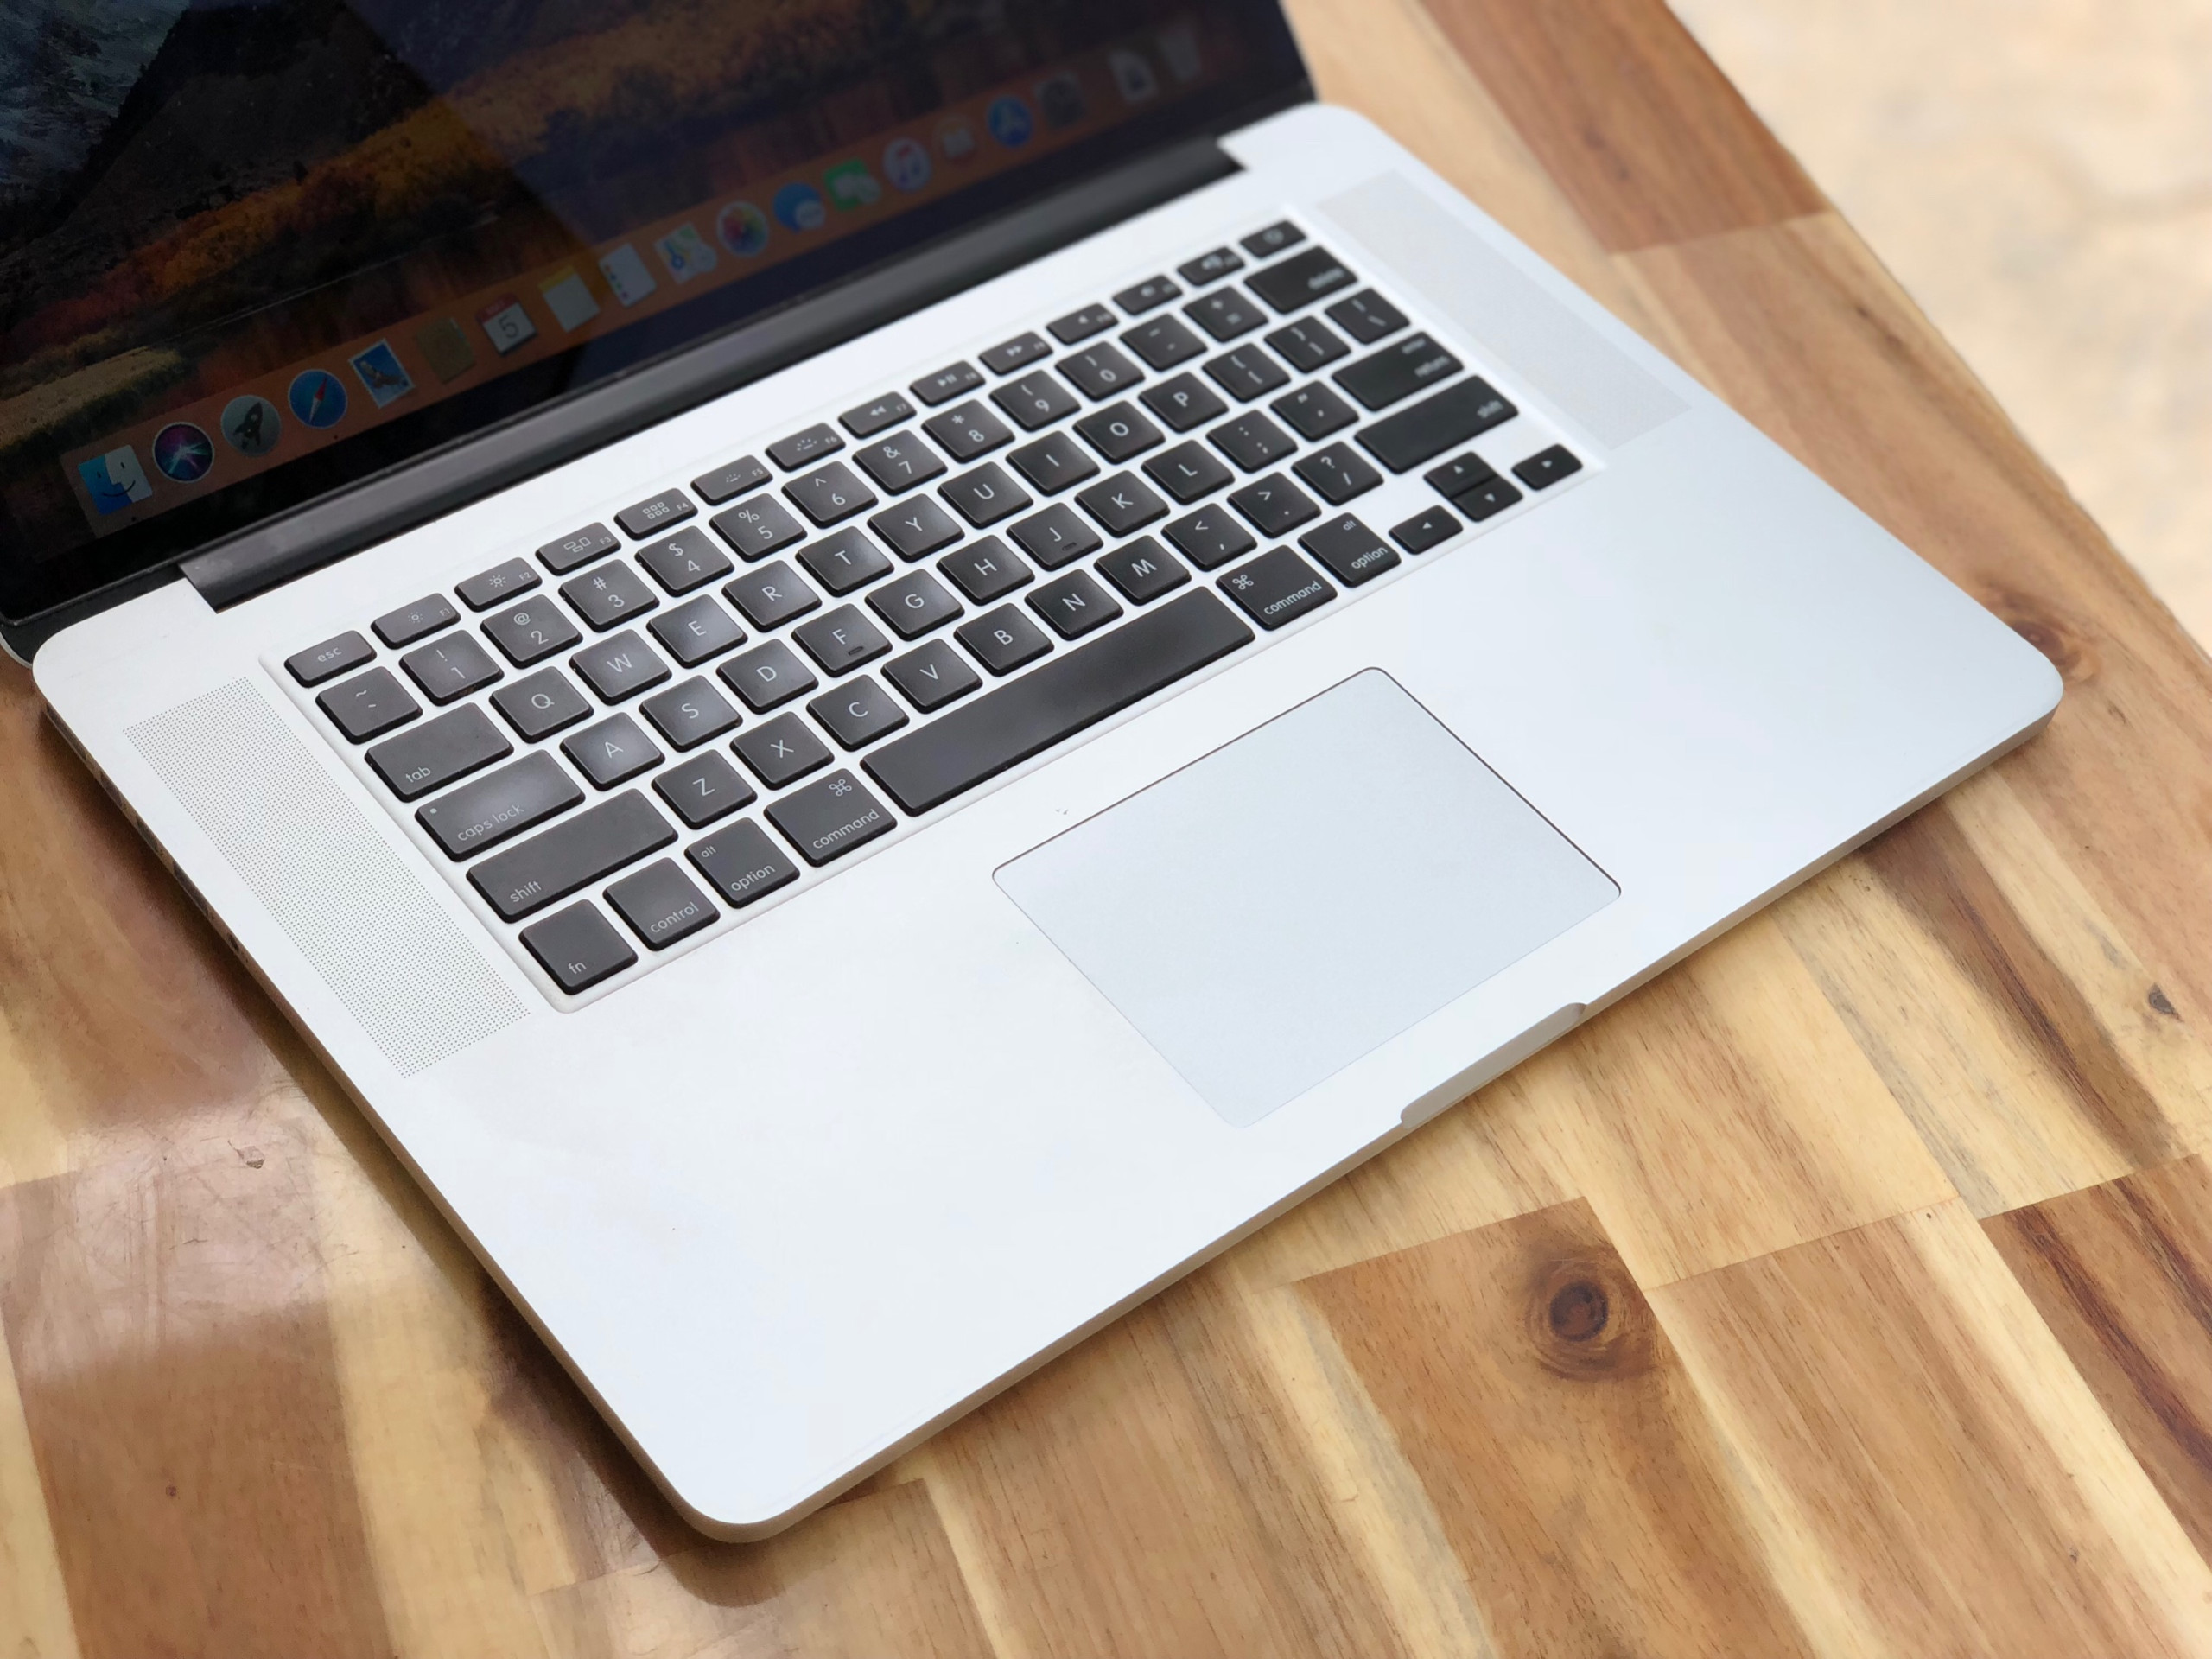 Macbook Pro Retina ME293/ Core i7/ Ram 8G/ SSD/ 15in/ MAC OS/ Retina/ Giá rẻ4